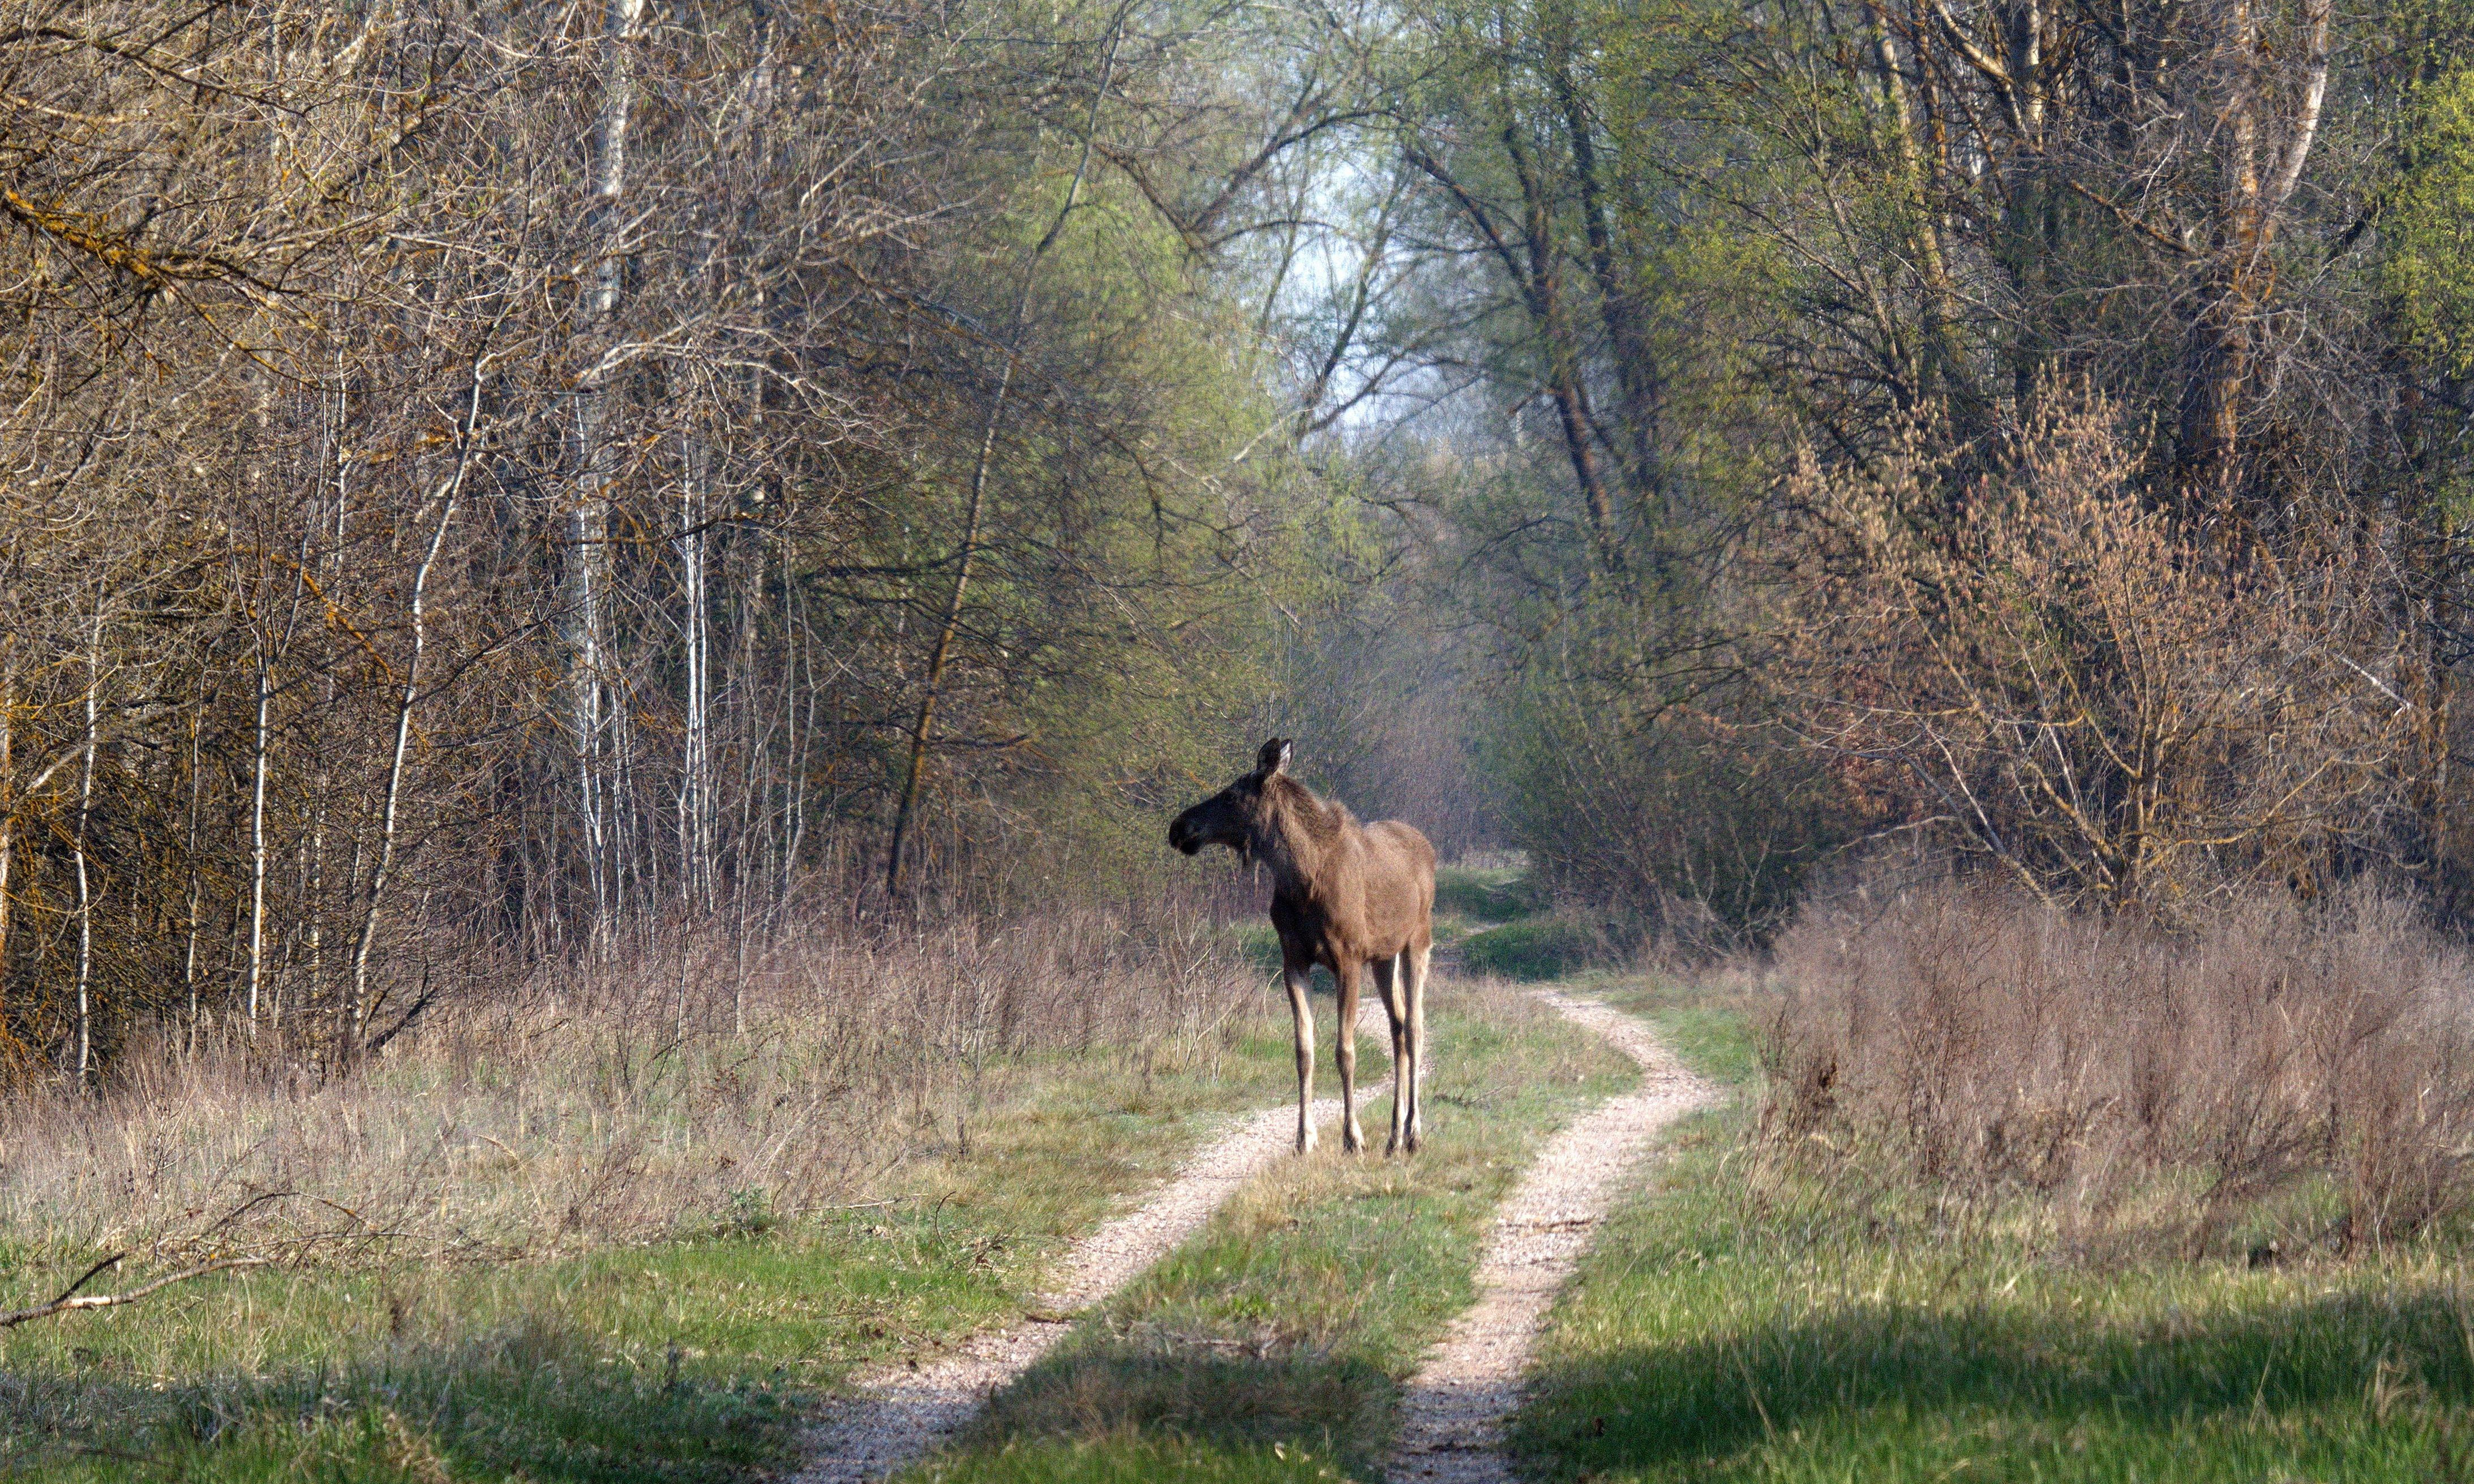 Chernobyl: the wildlife haven created when people left